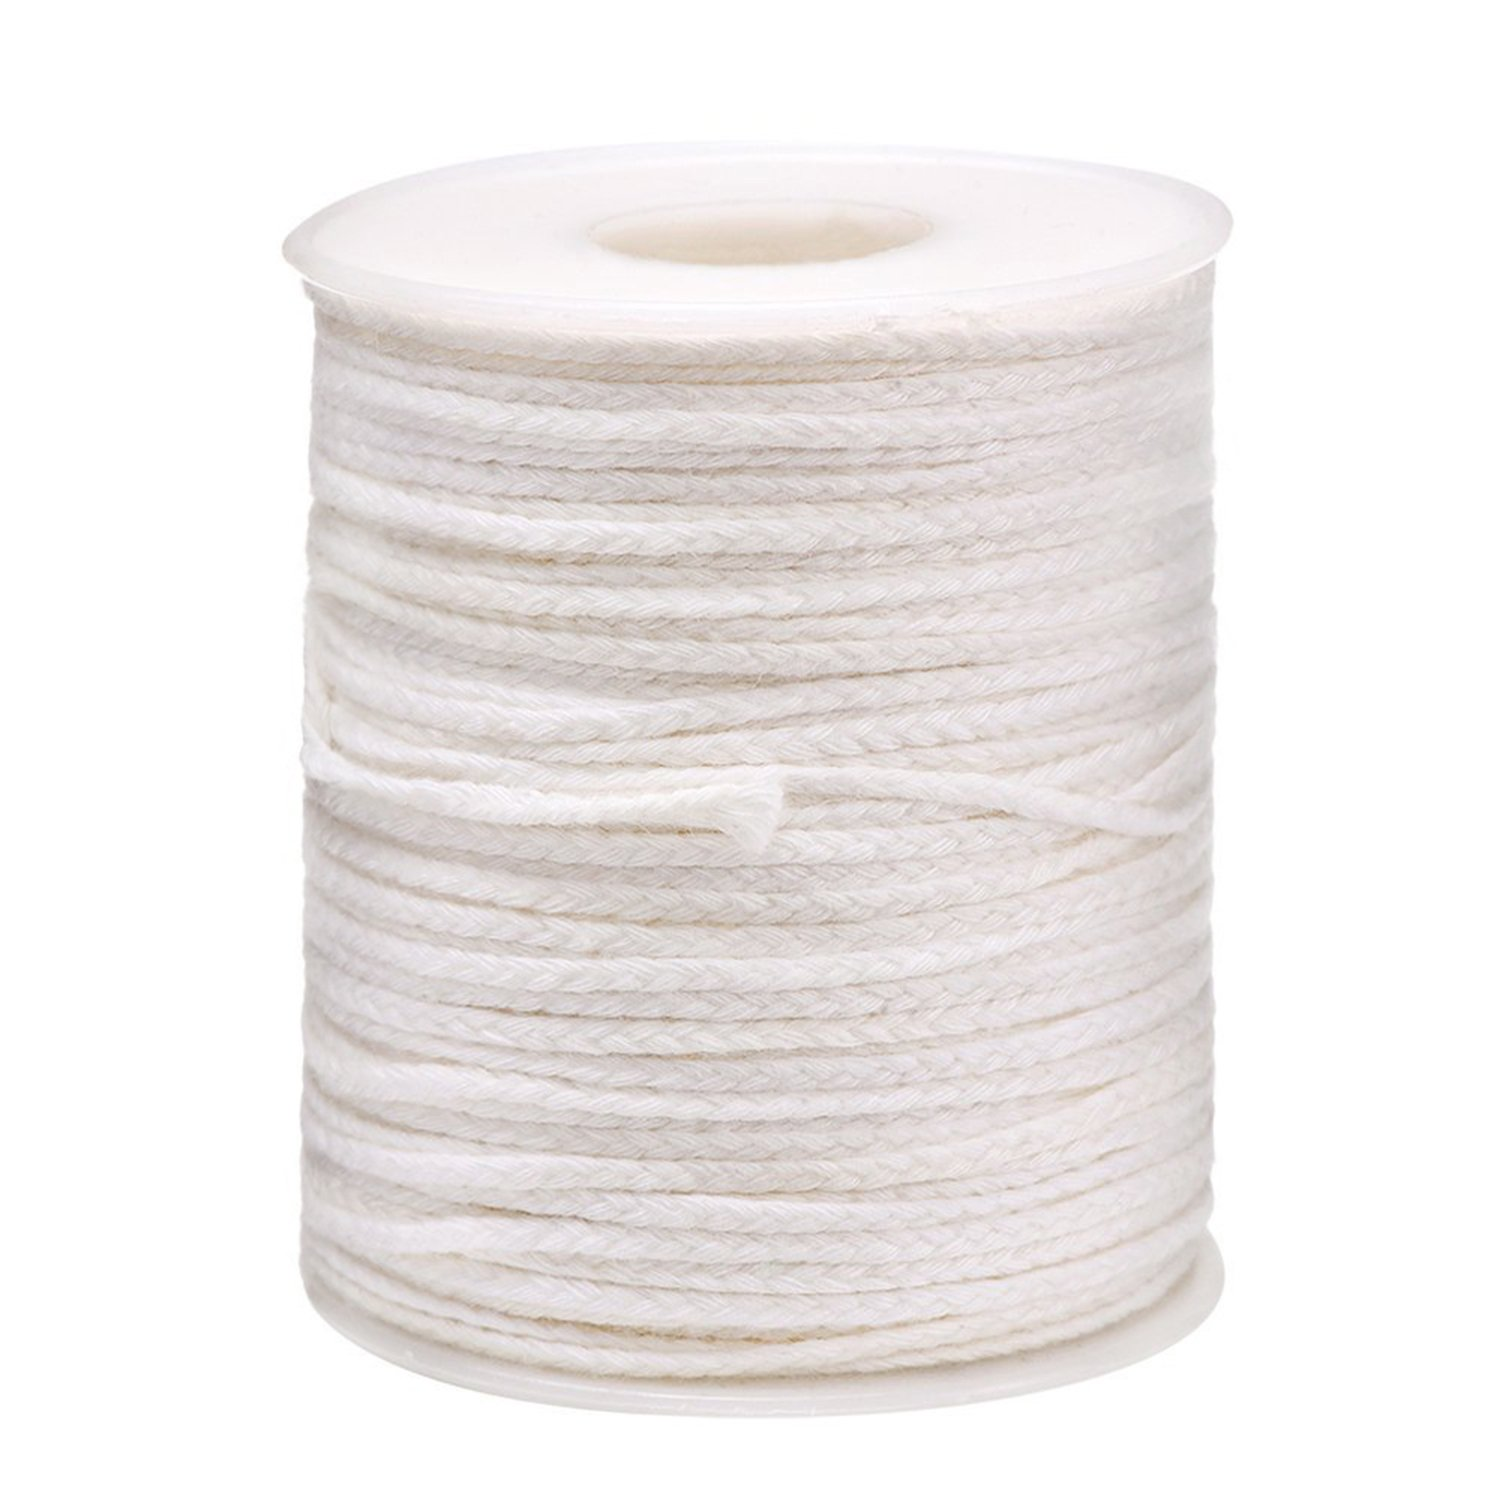 Outus 200 Feet 24 Ply Braided Wick Candle Wick Spool for Candle DIY and Candle Making by Outus